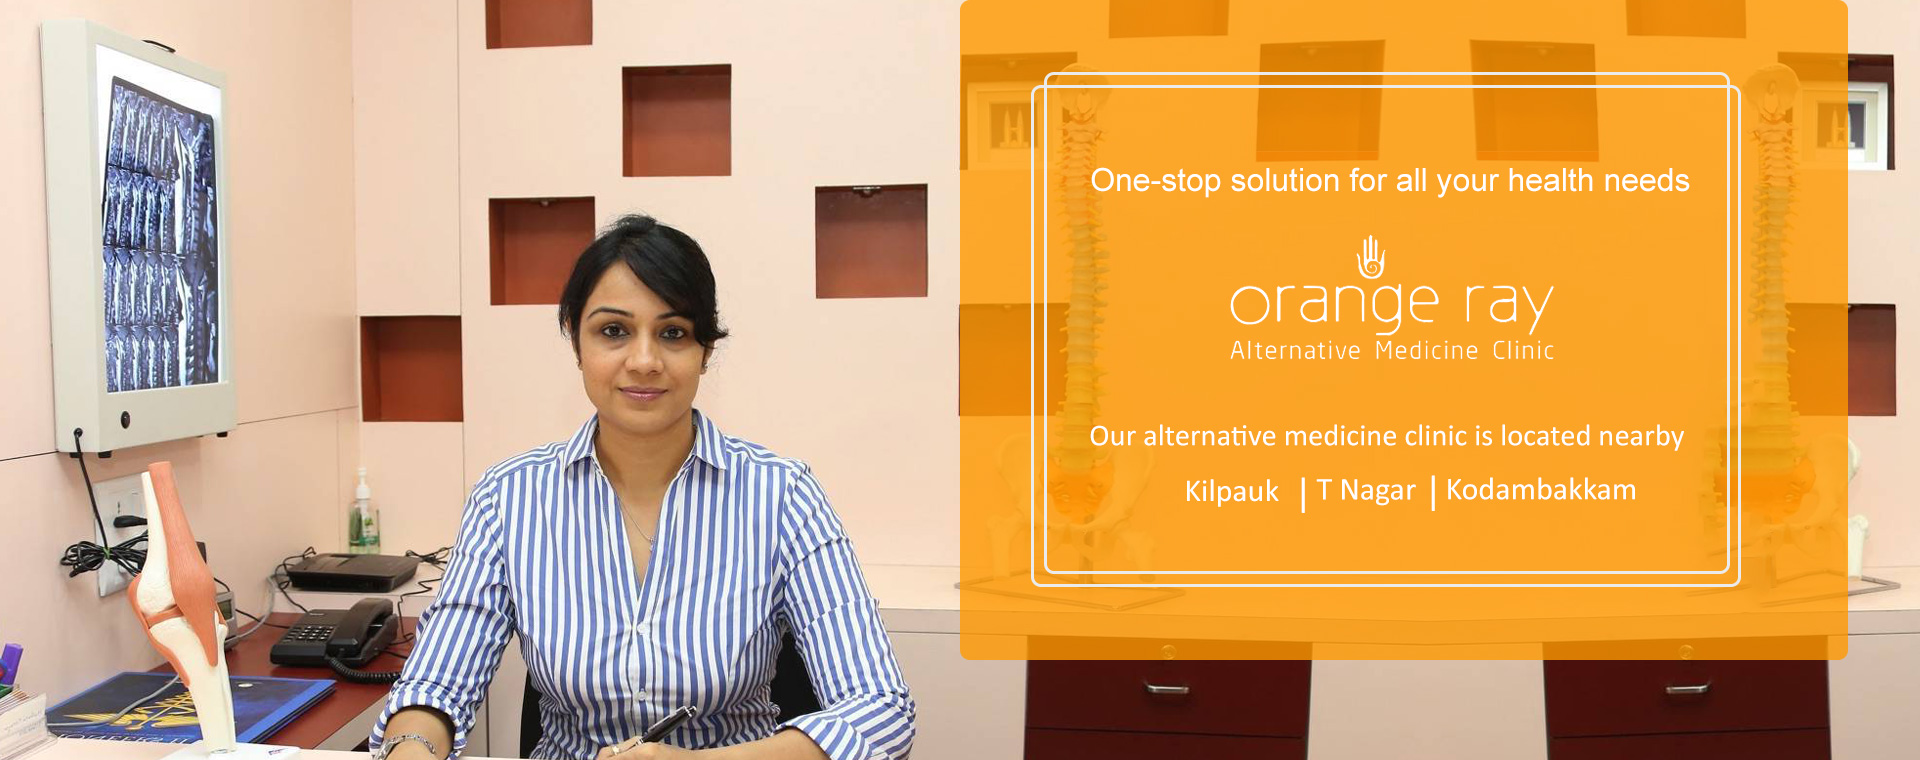 Orange Ray alternative medicine clinic in T nagar